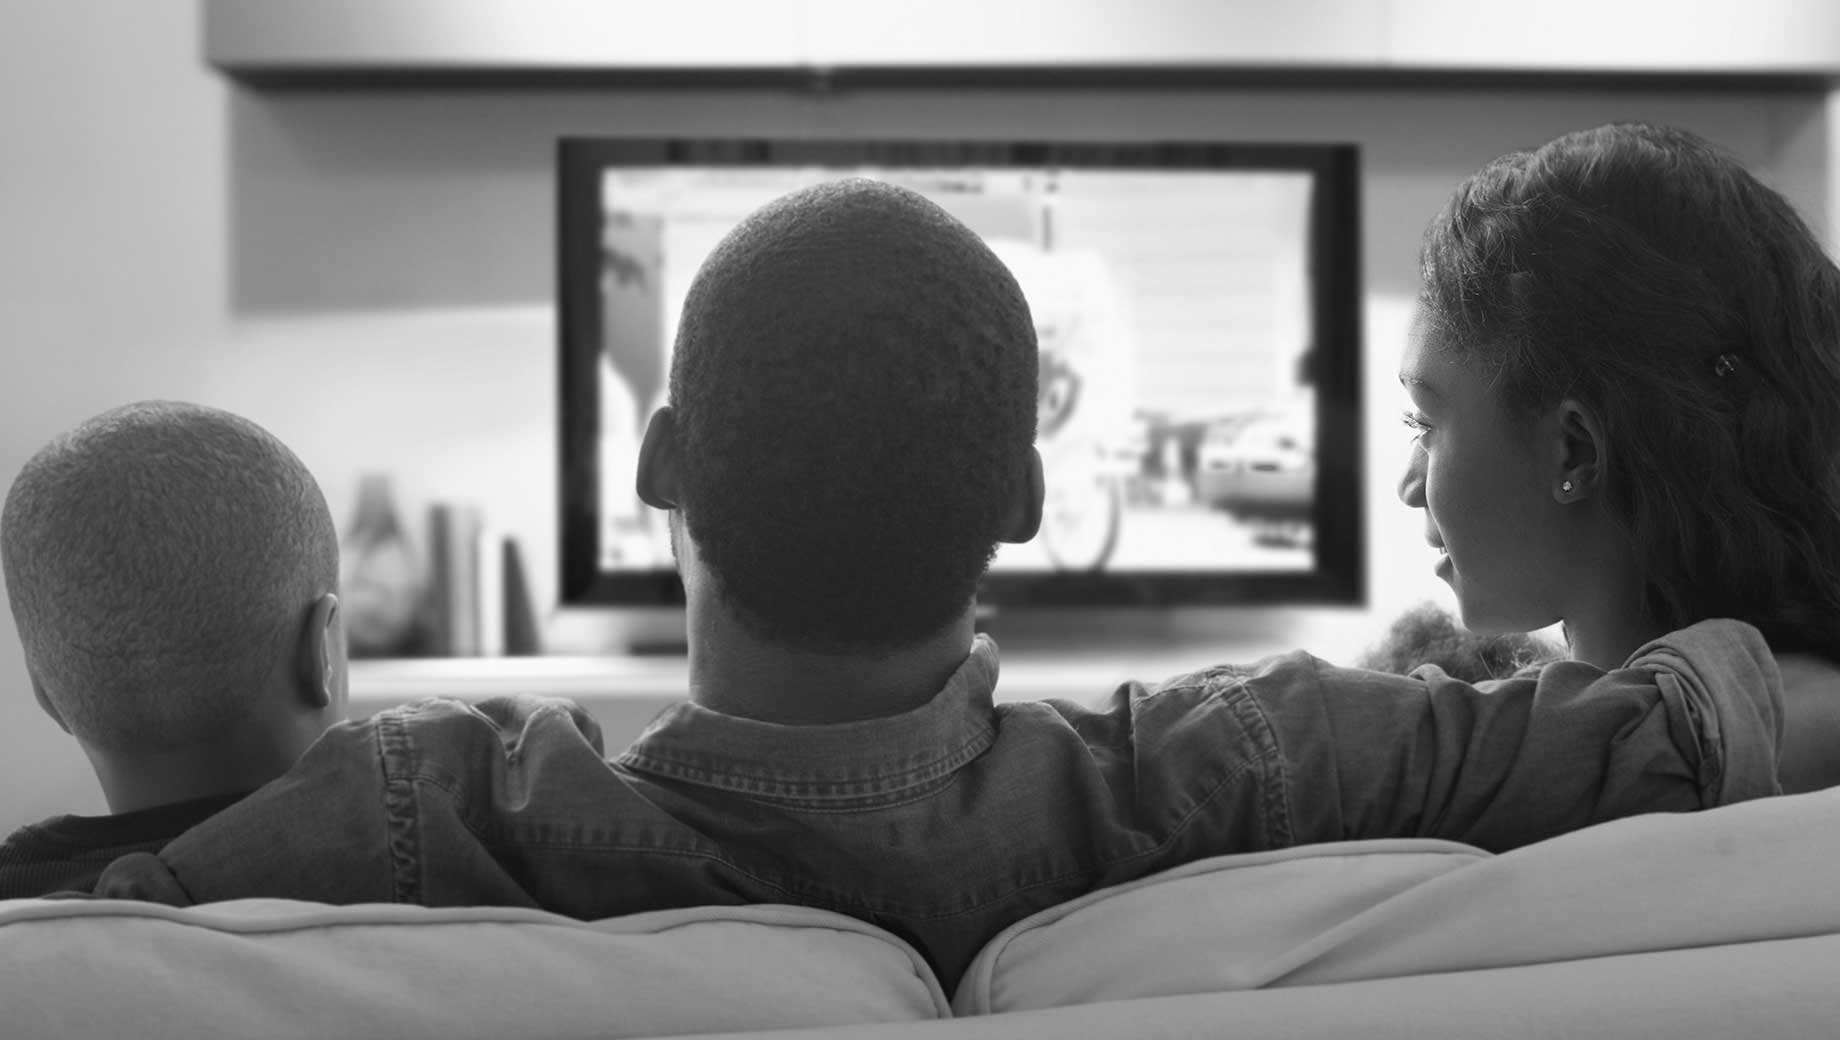 Ideal Evenings for Most Americans Involve Family Time, TV